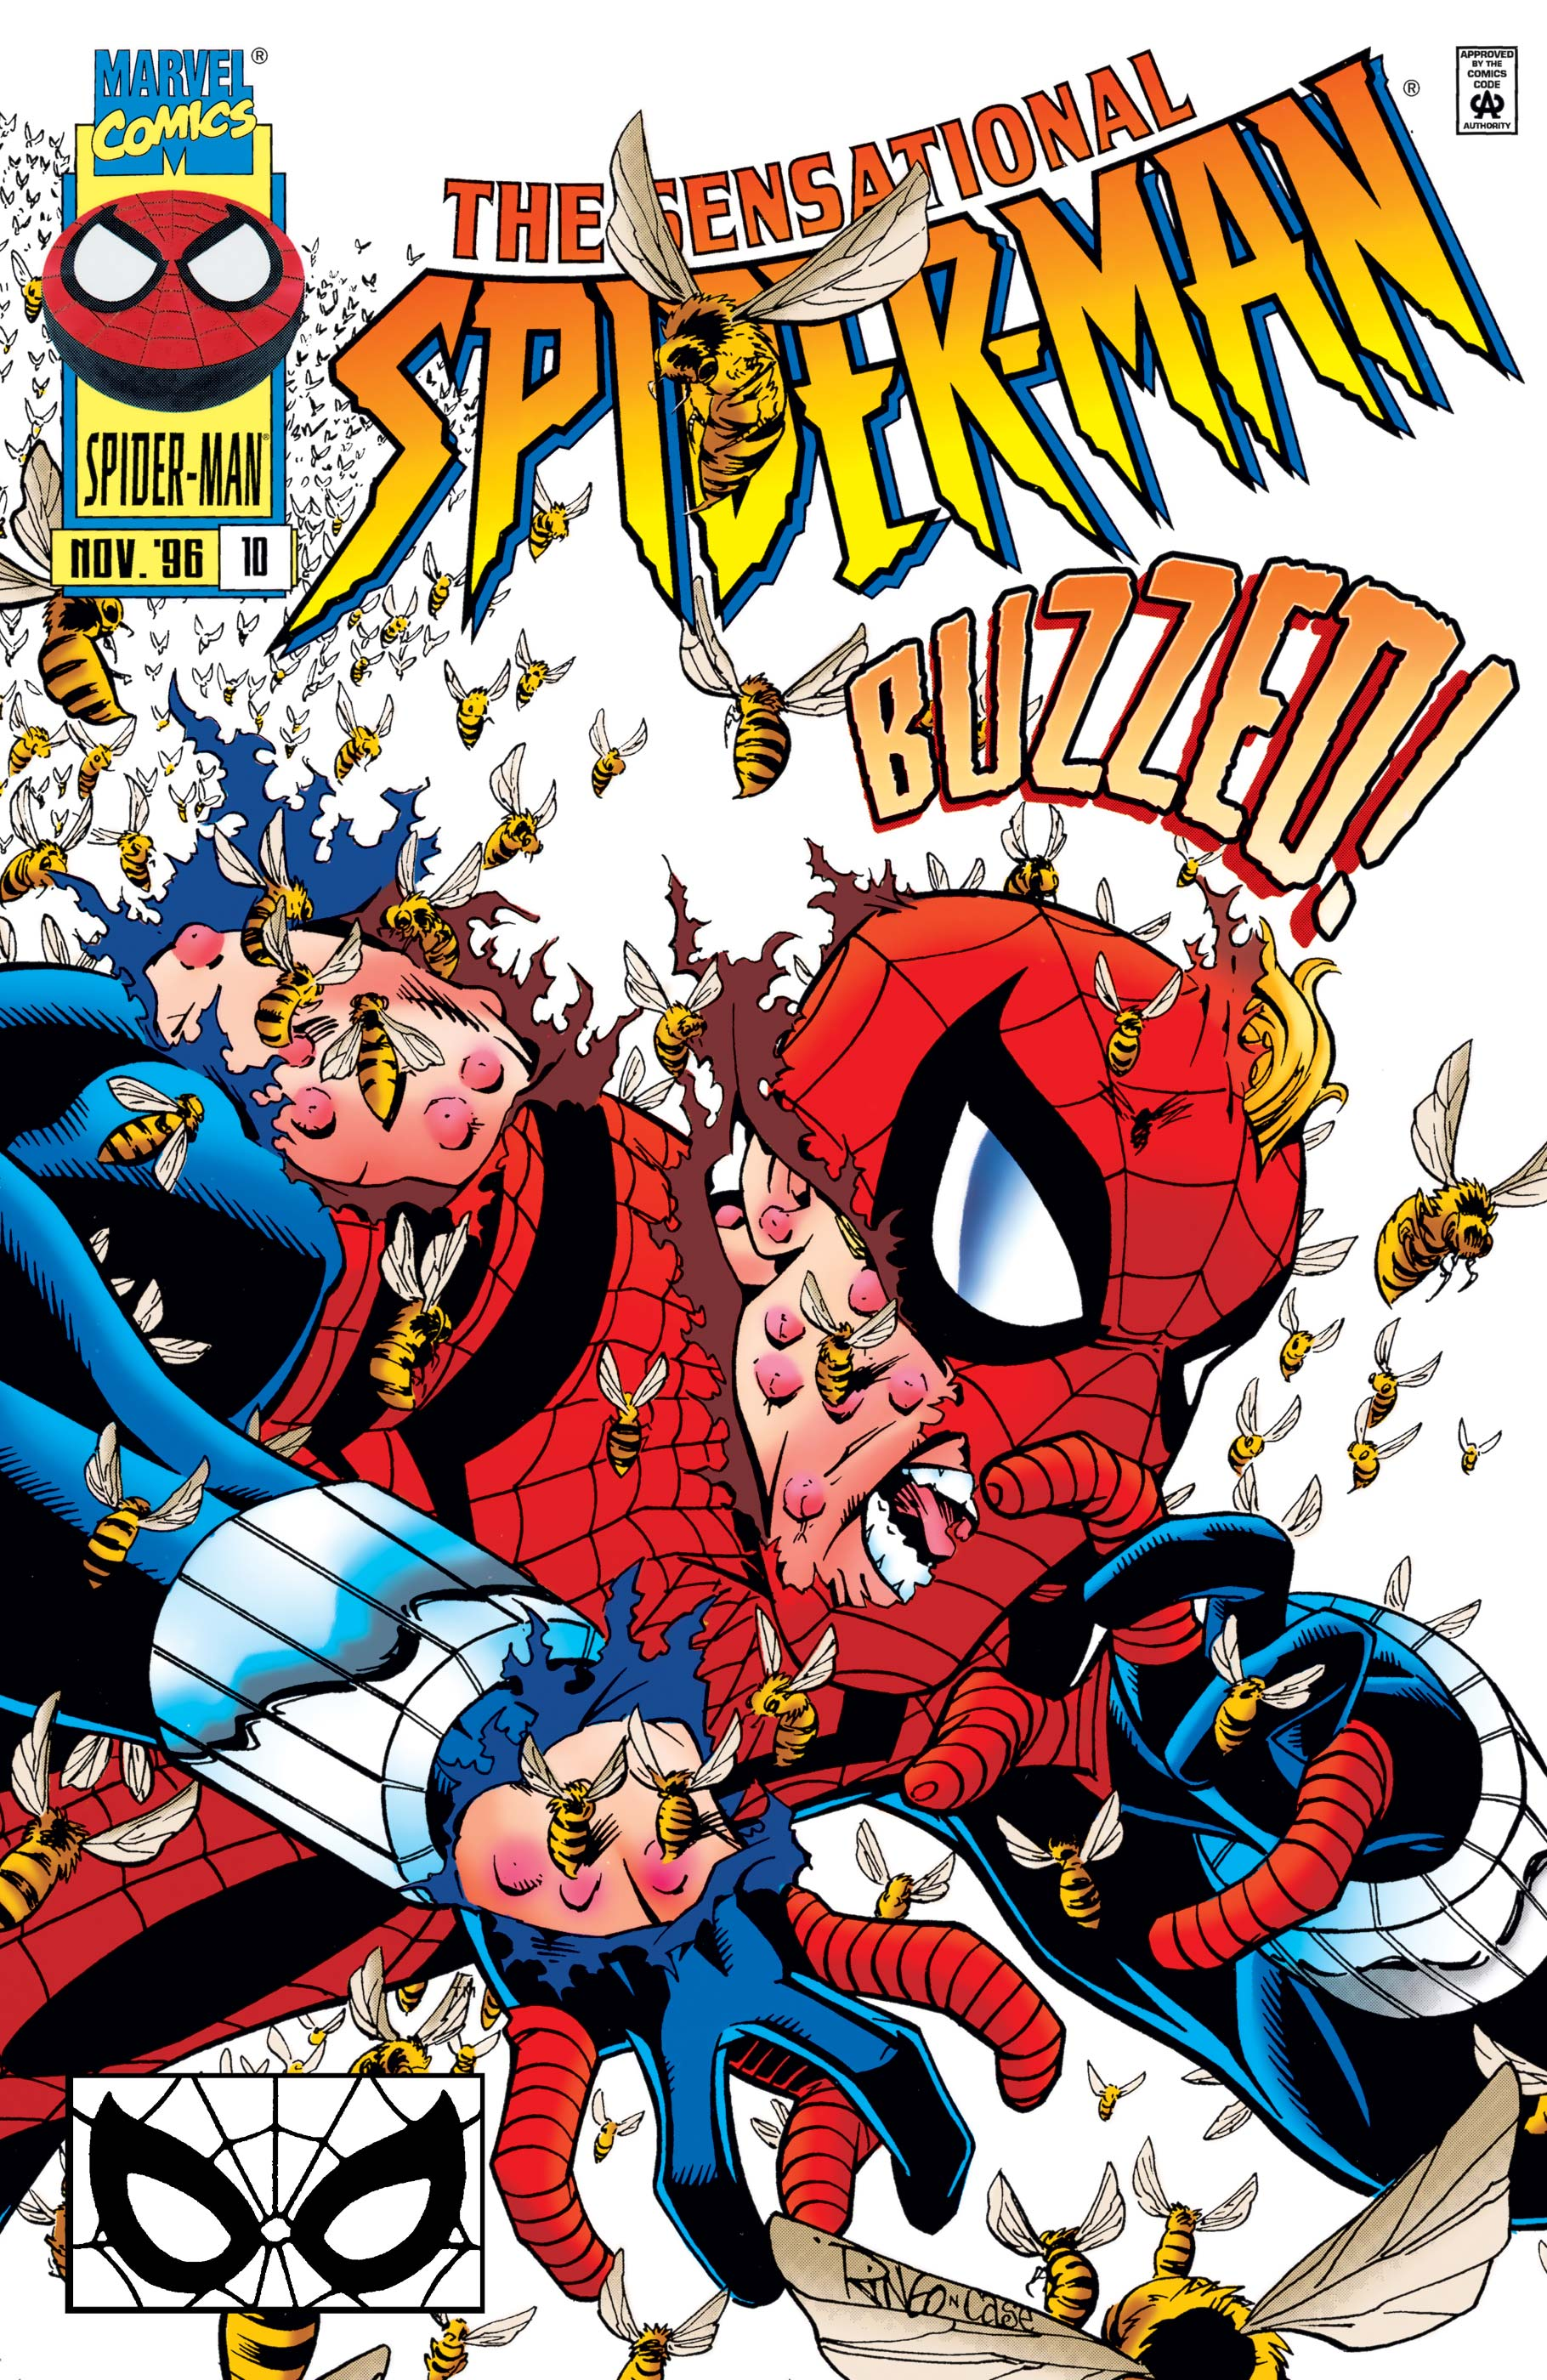 Sensational Spider-Man (1996) #10